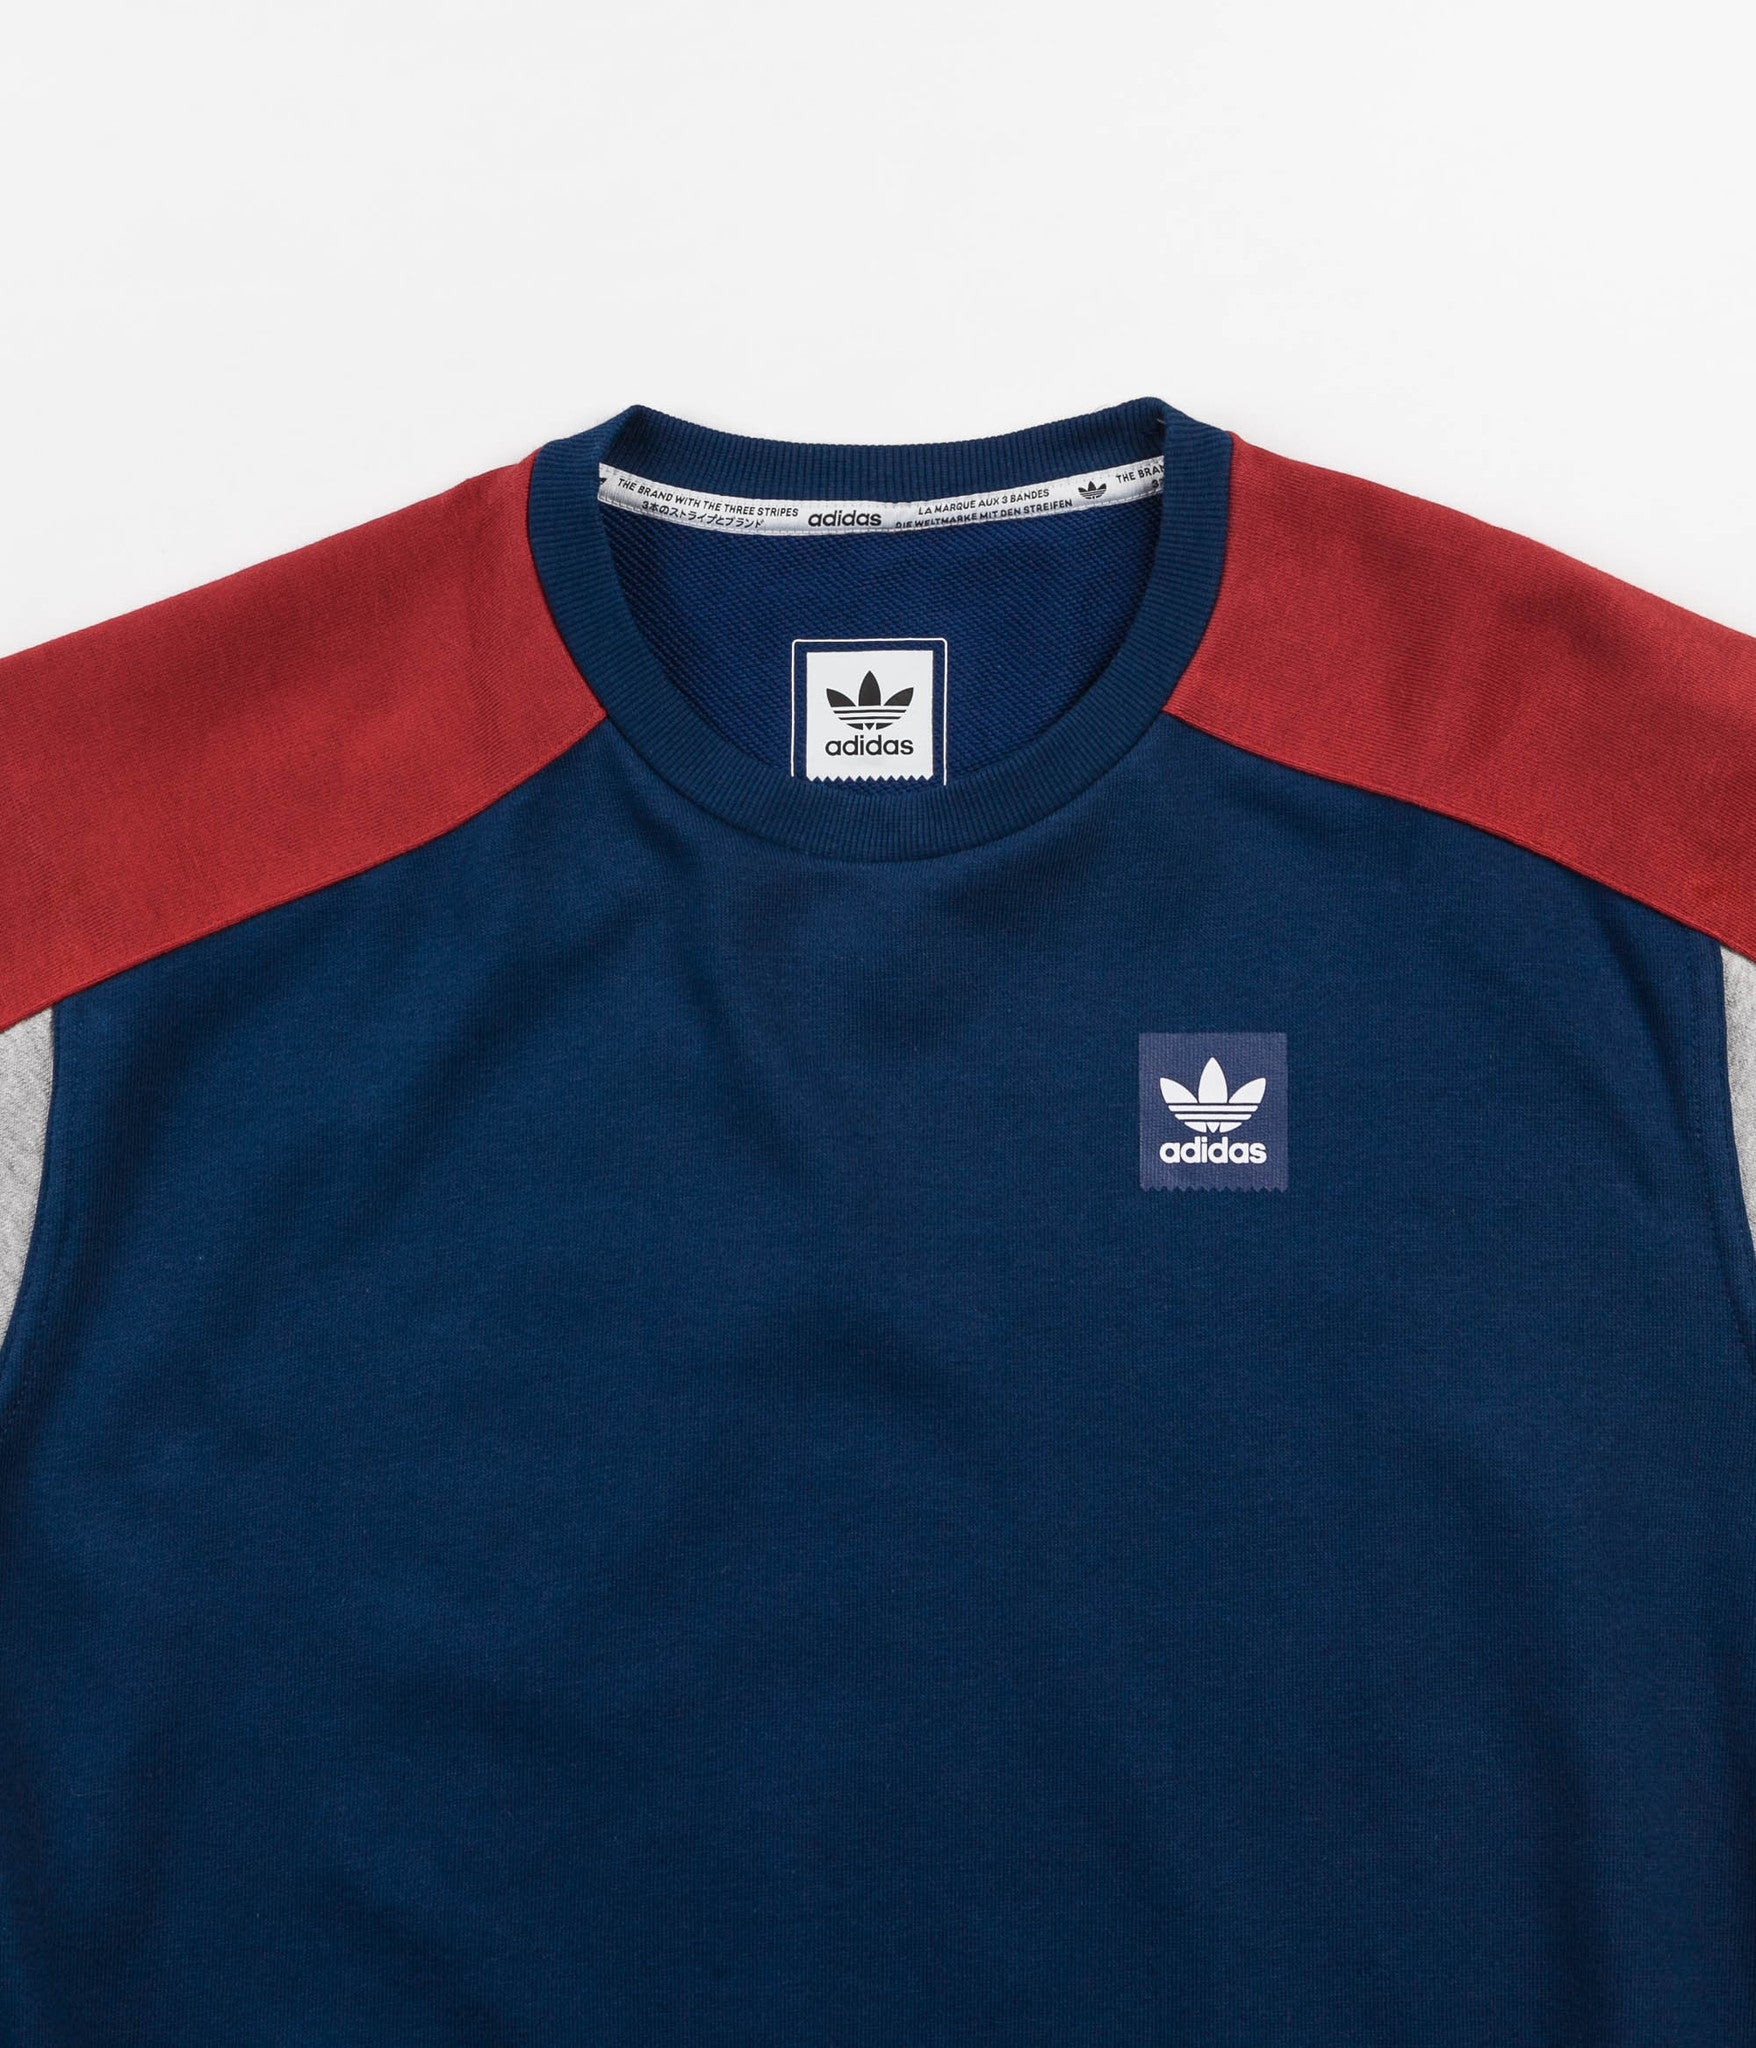 Adidas Climalite Nautical Crewneck Sweatshirt - Mystery Red / Mystery Blue / Medium Grey Heather / White